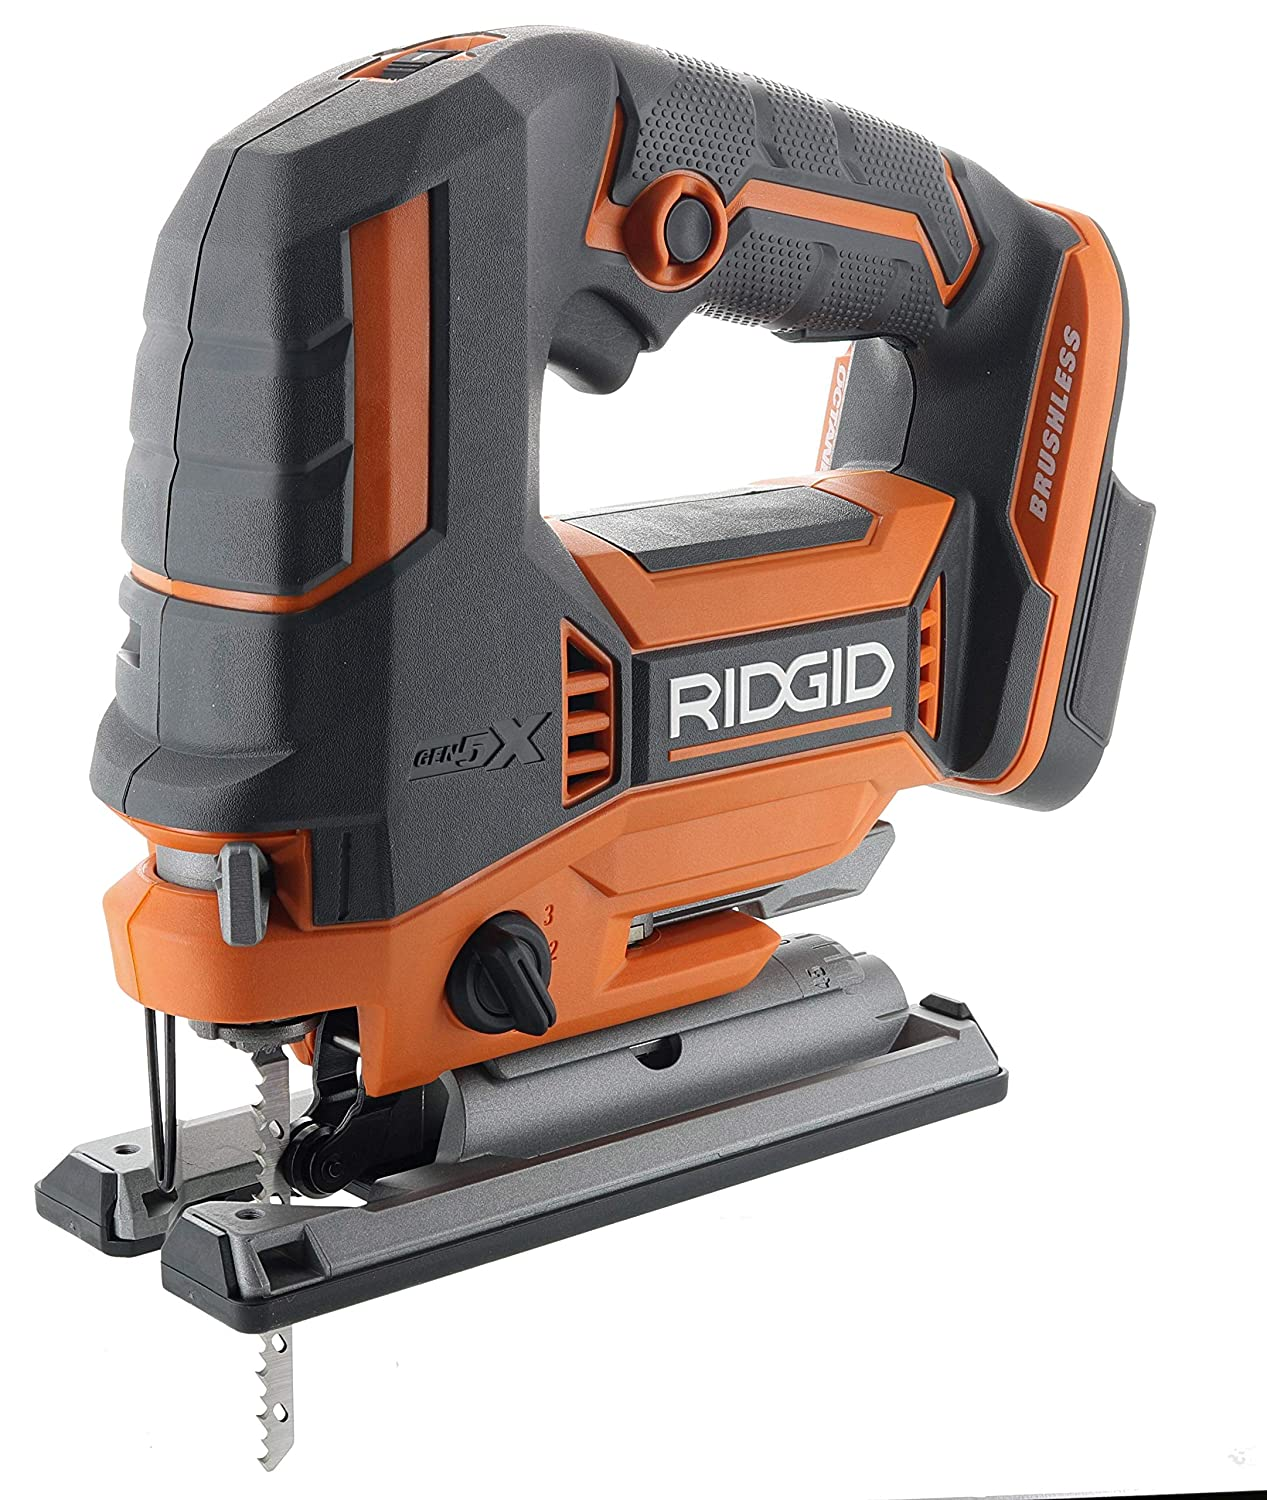 Ridgid R8832B OCTANE 18V Lithium Ion Cordless Brushless Jig Saw w Dust Blower and Orbital Action Battery Not Included Power Tool Only